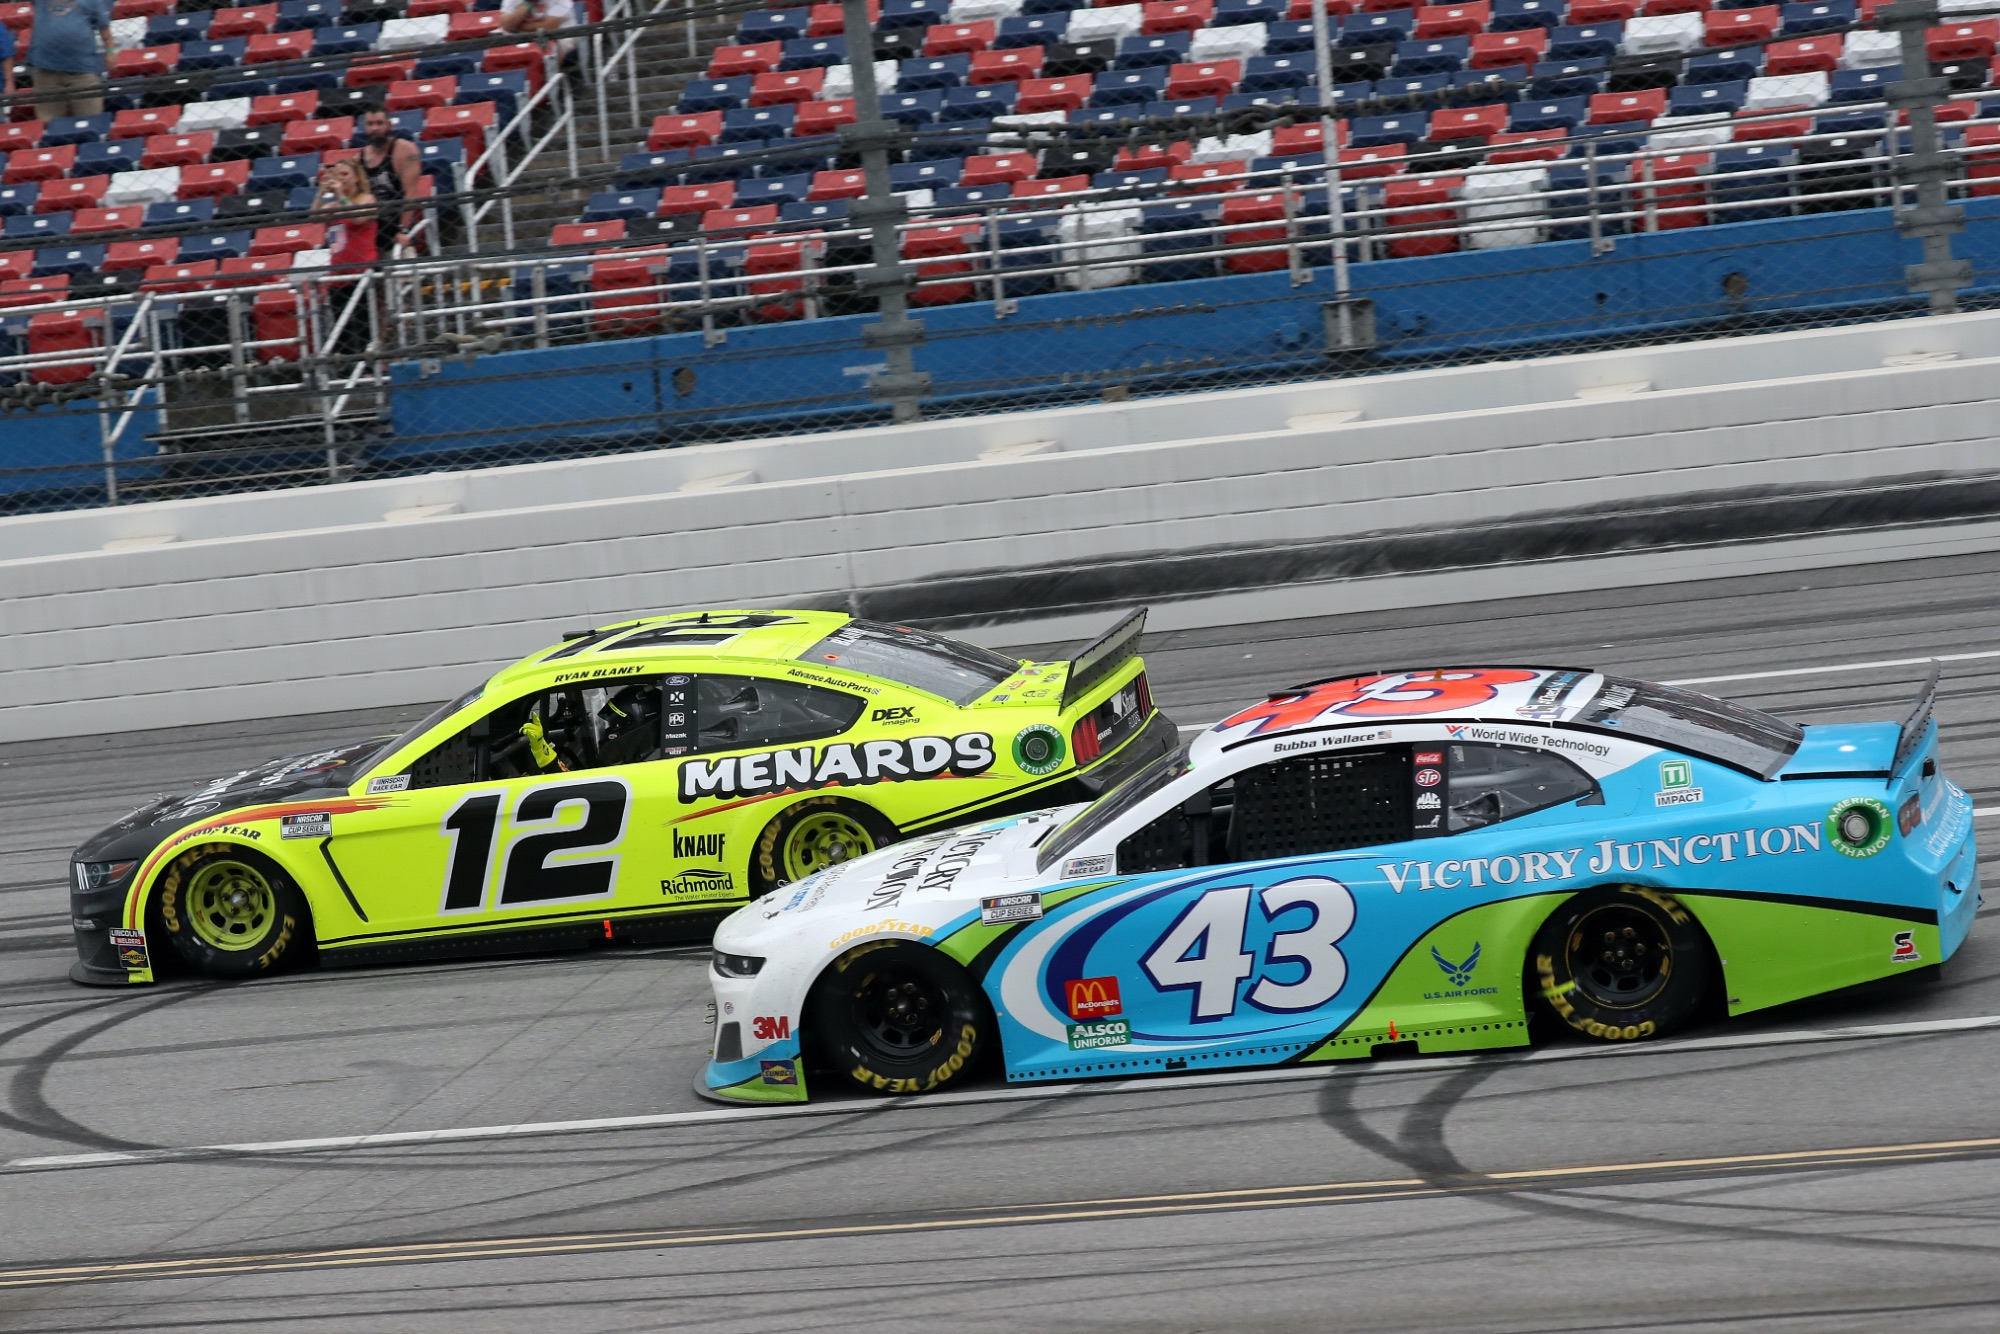 Blaney wins photo finish at Talladega as NASCAR rallies behind Wallace